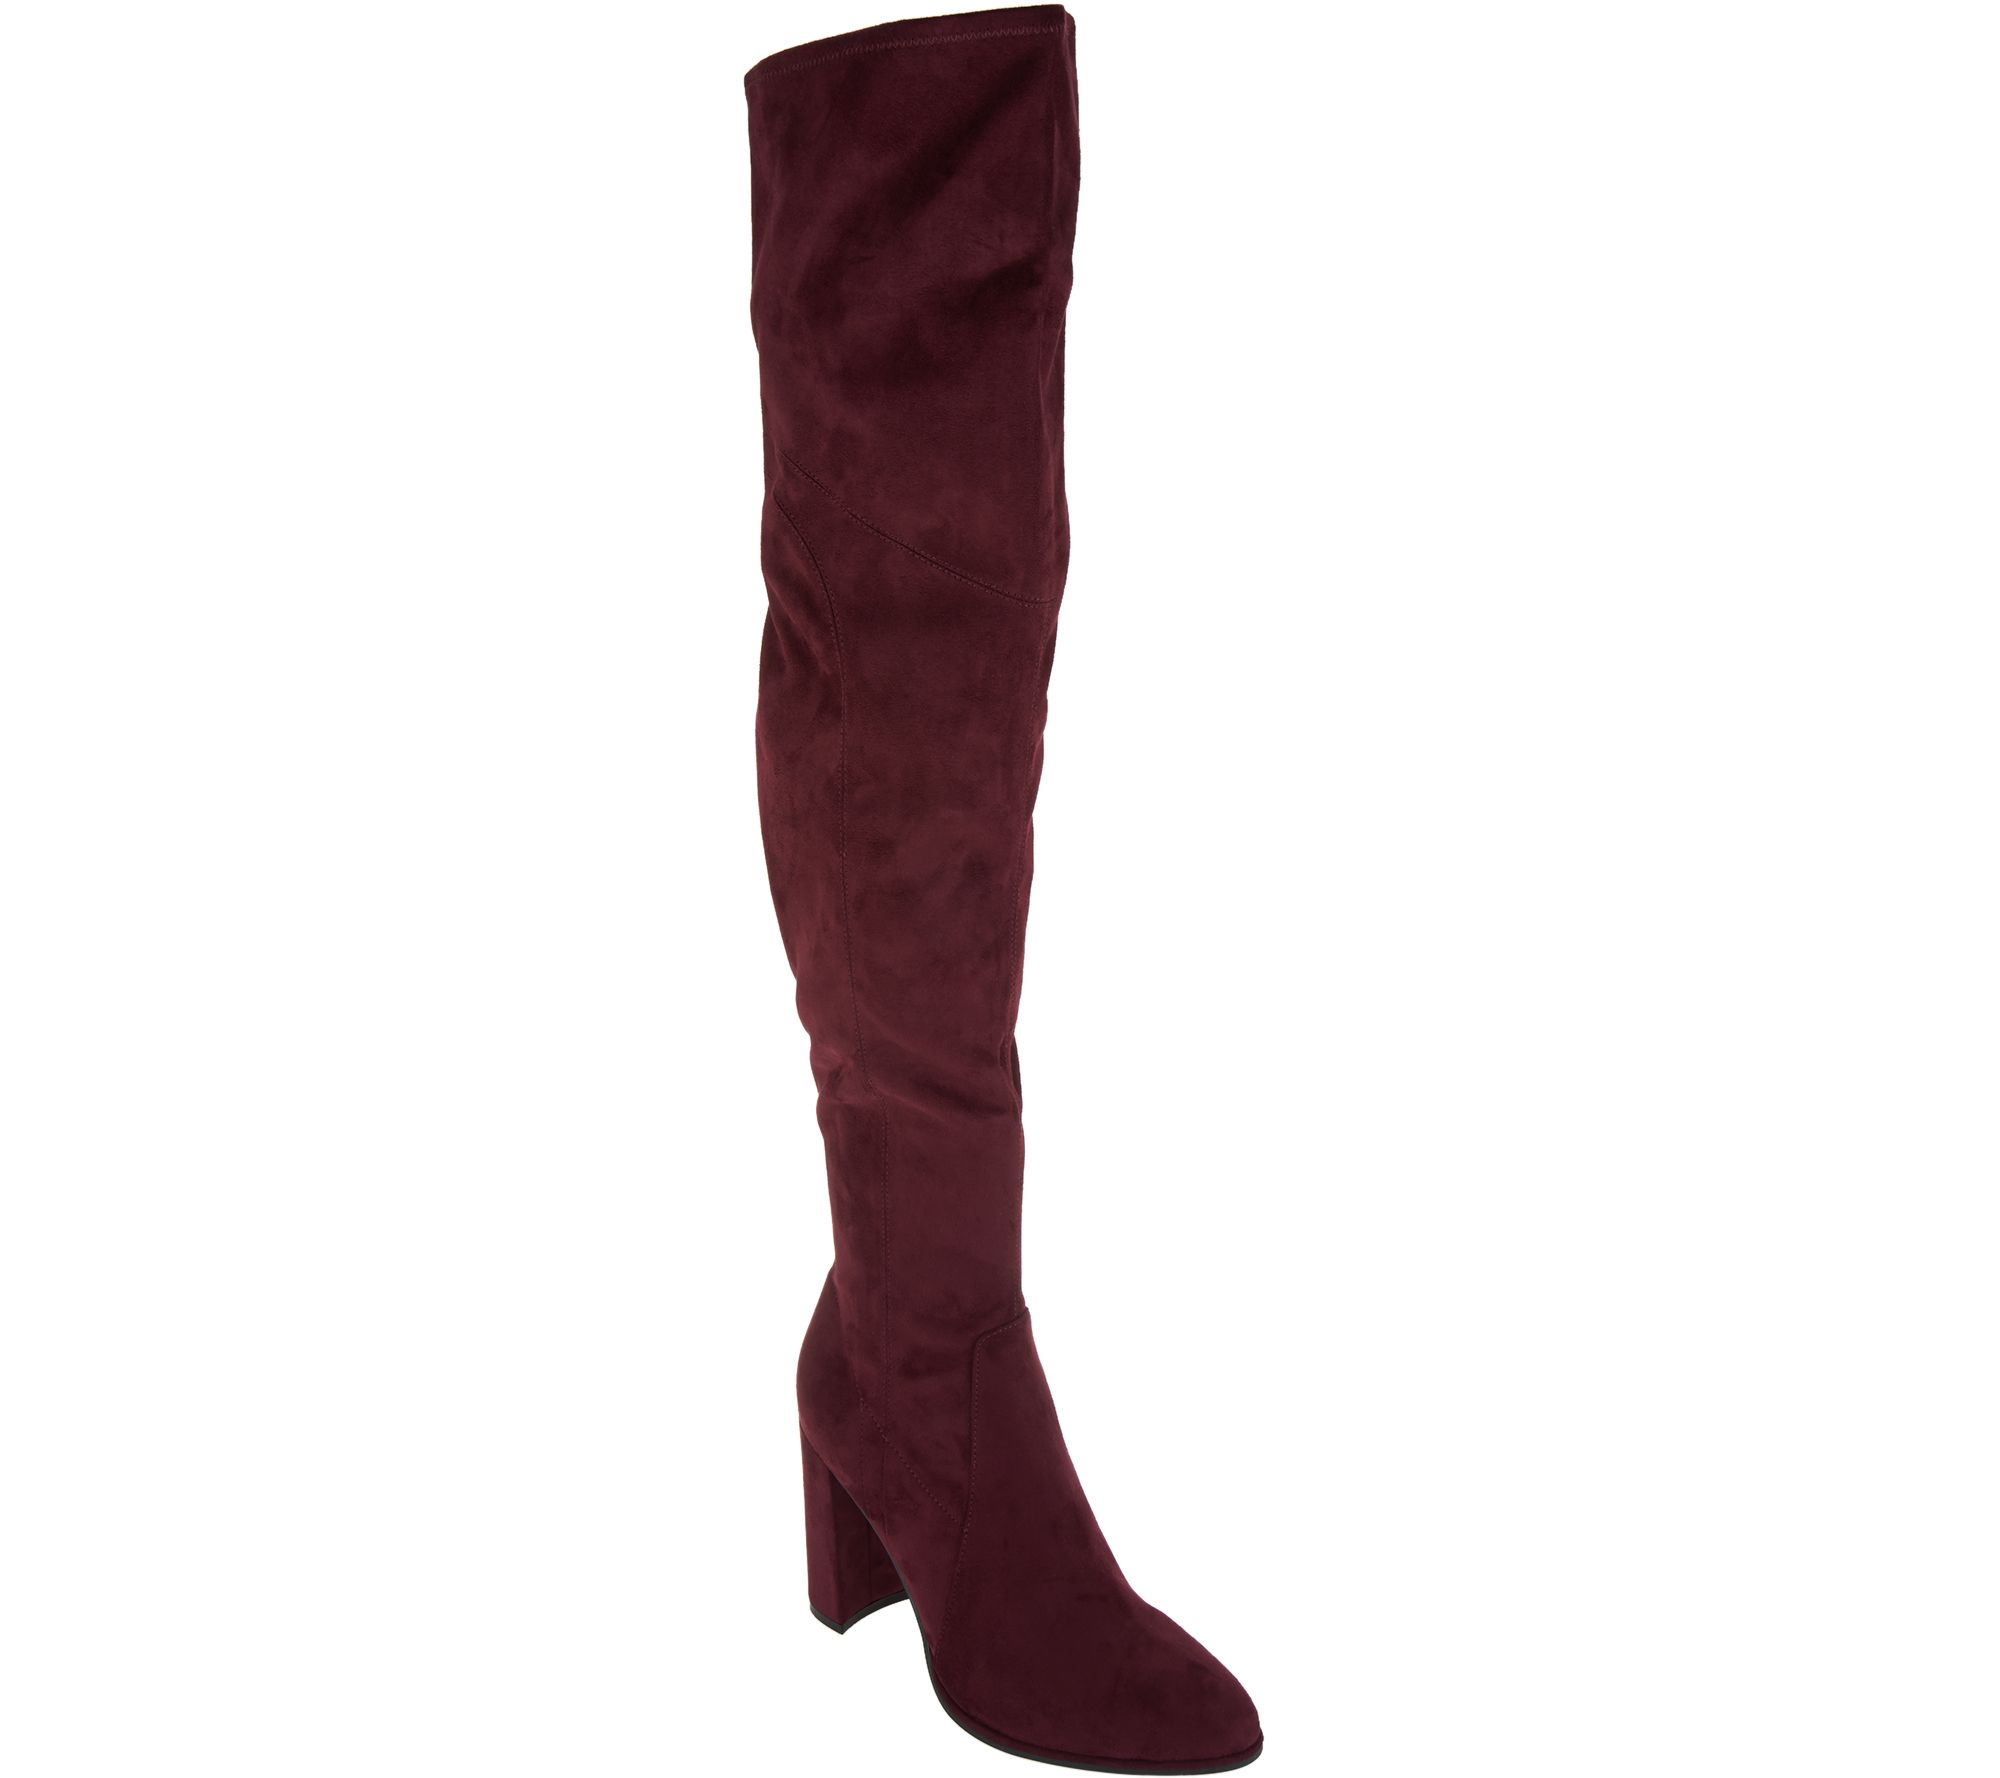 ad04f55d0c9 Marc Fisher Faux Suede or Glitter Fabric Thigh High Boots - Nella - Page 1  — QVC.com